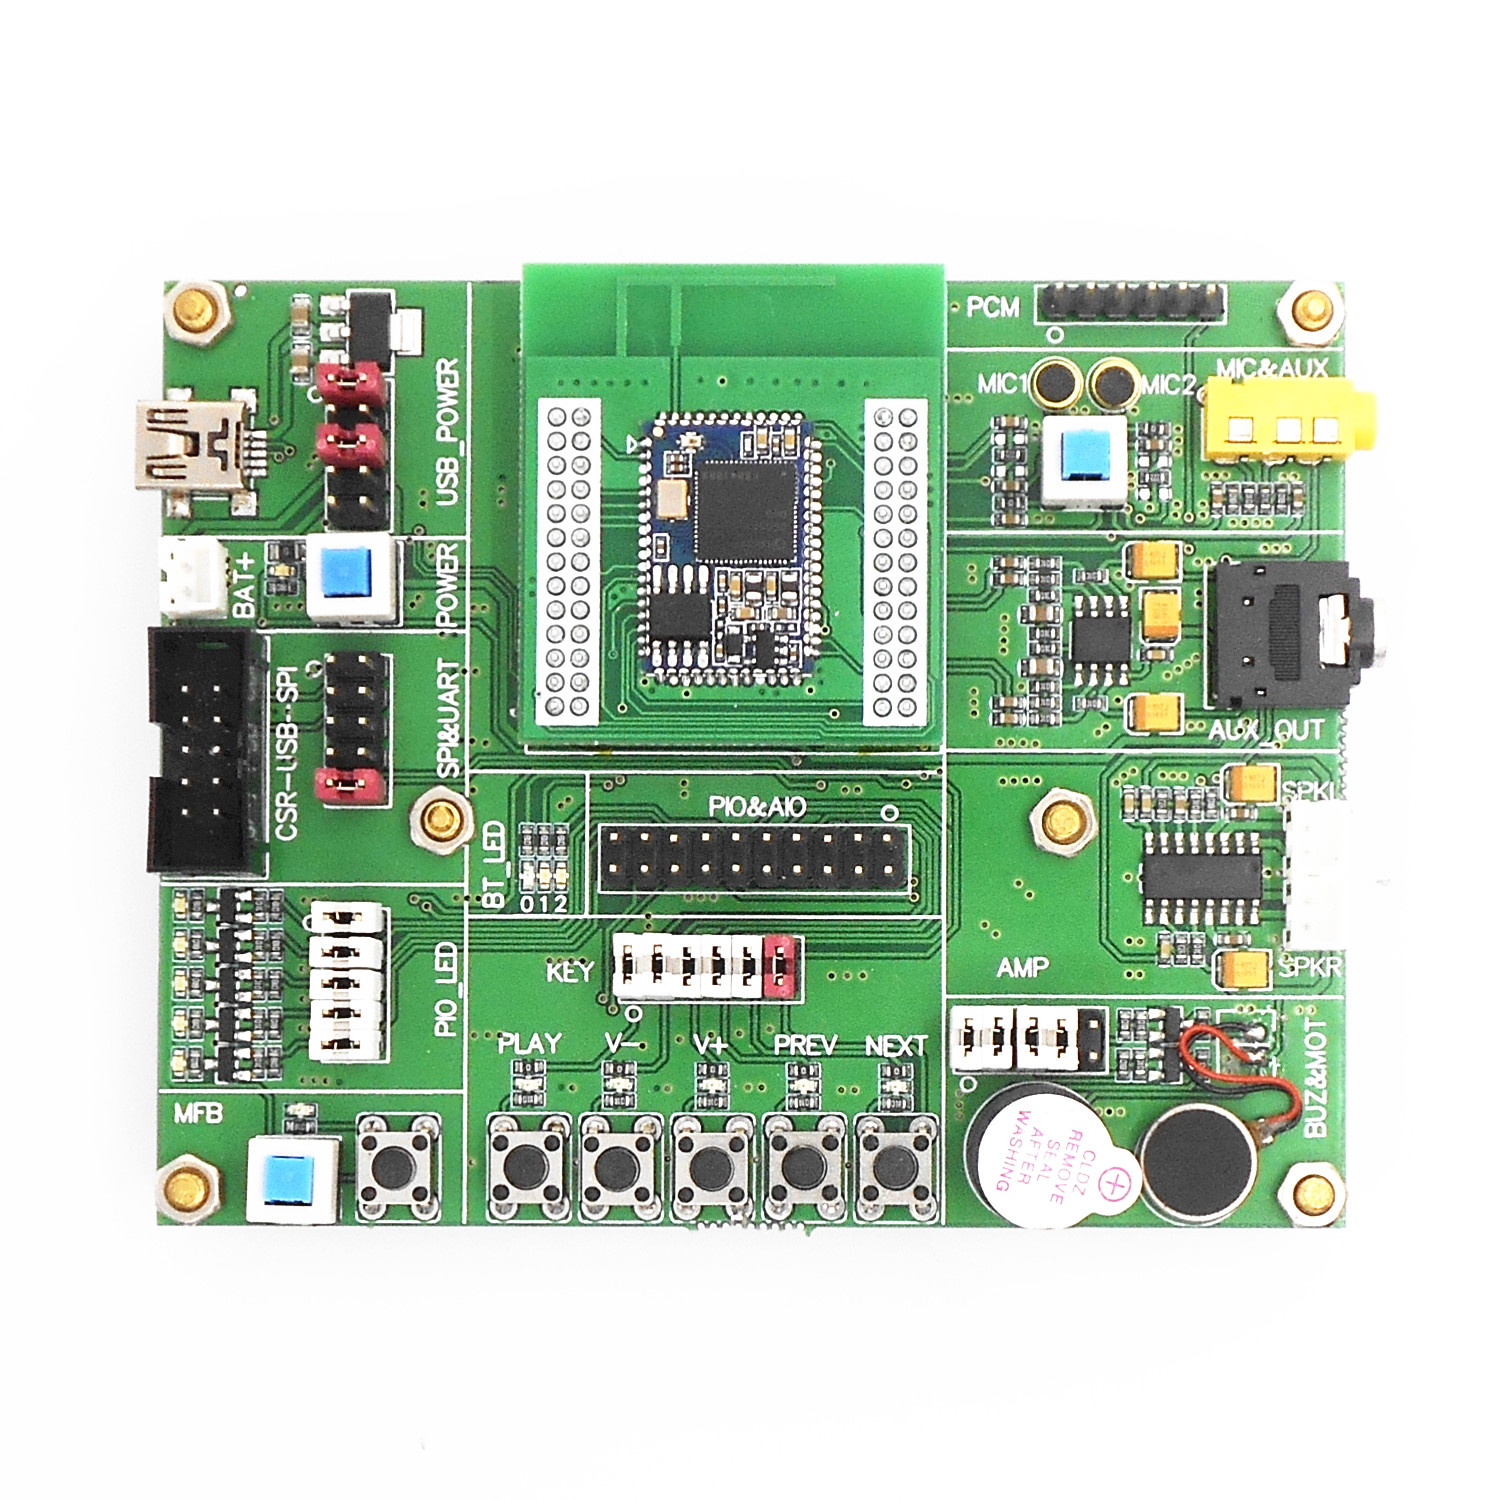 QCC3008 development board development data debug board demo board simulation board Bluetooth 5 0 demo